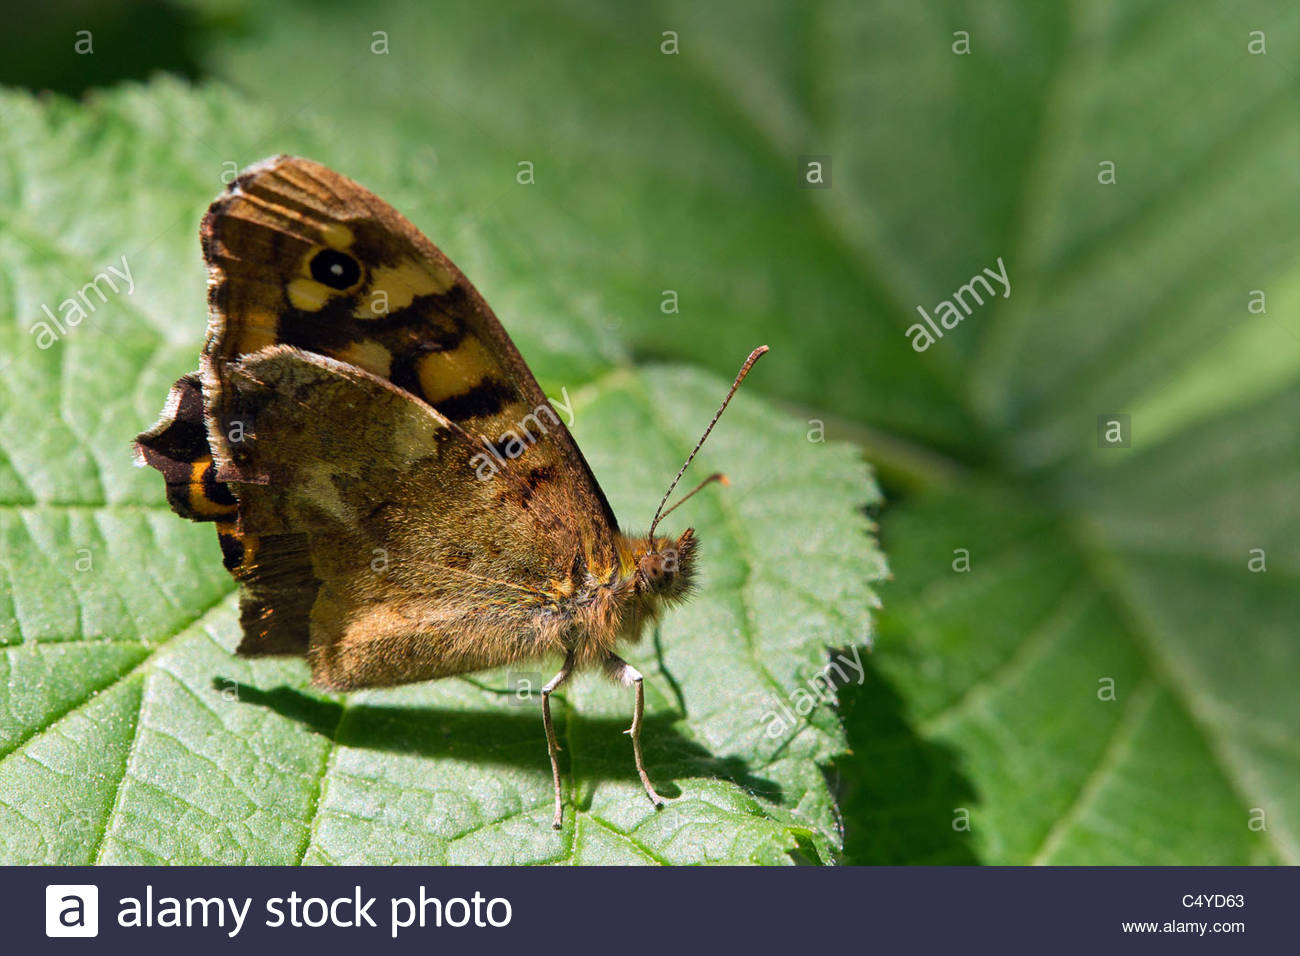 Pararge aegeria tircis known as the Speckled Wood - Stock Image